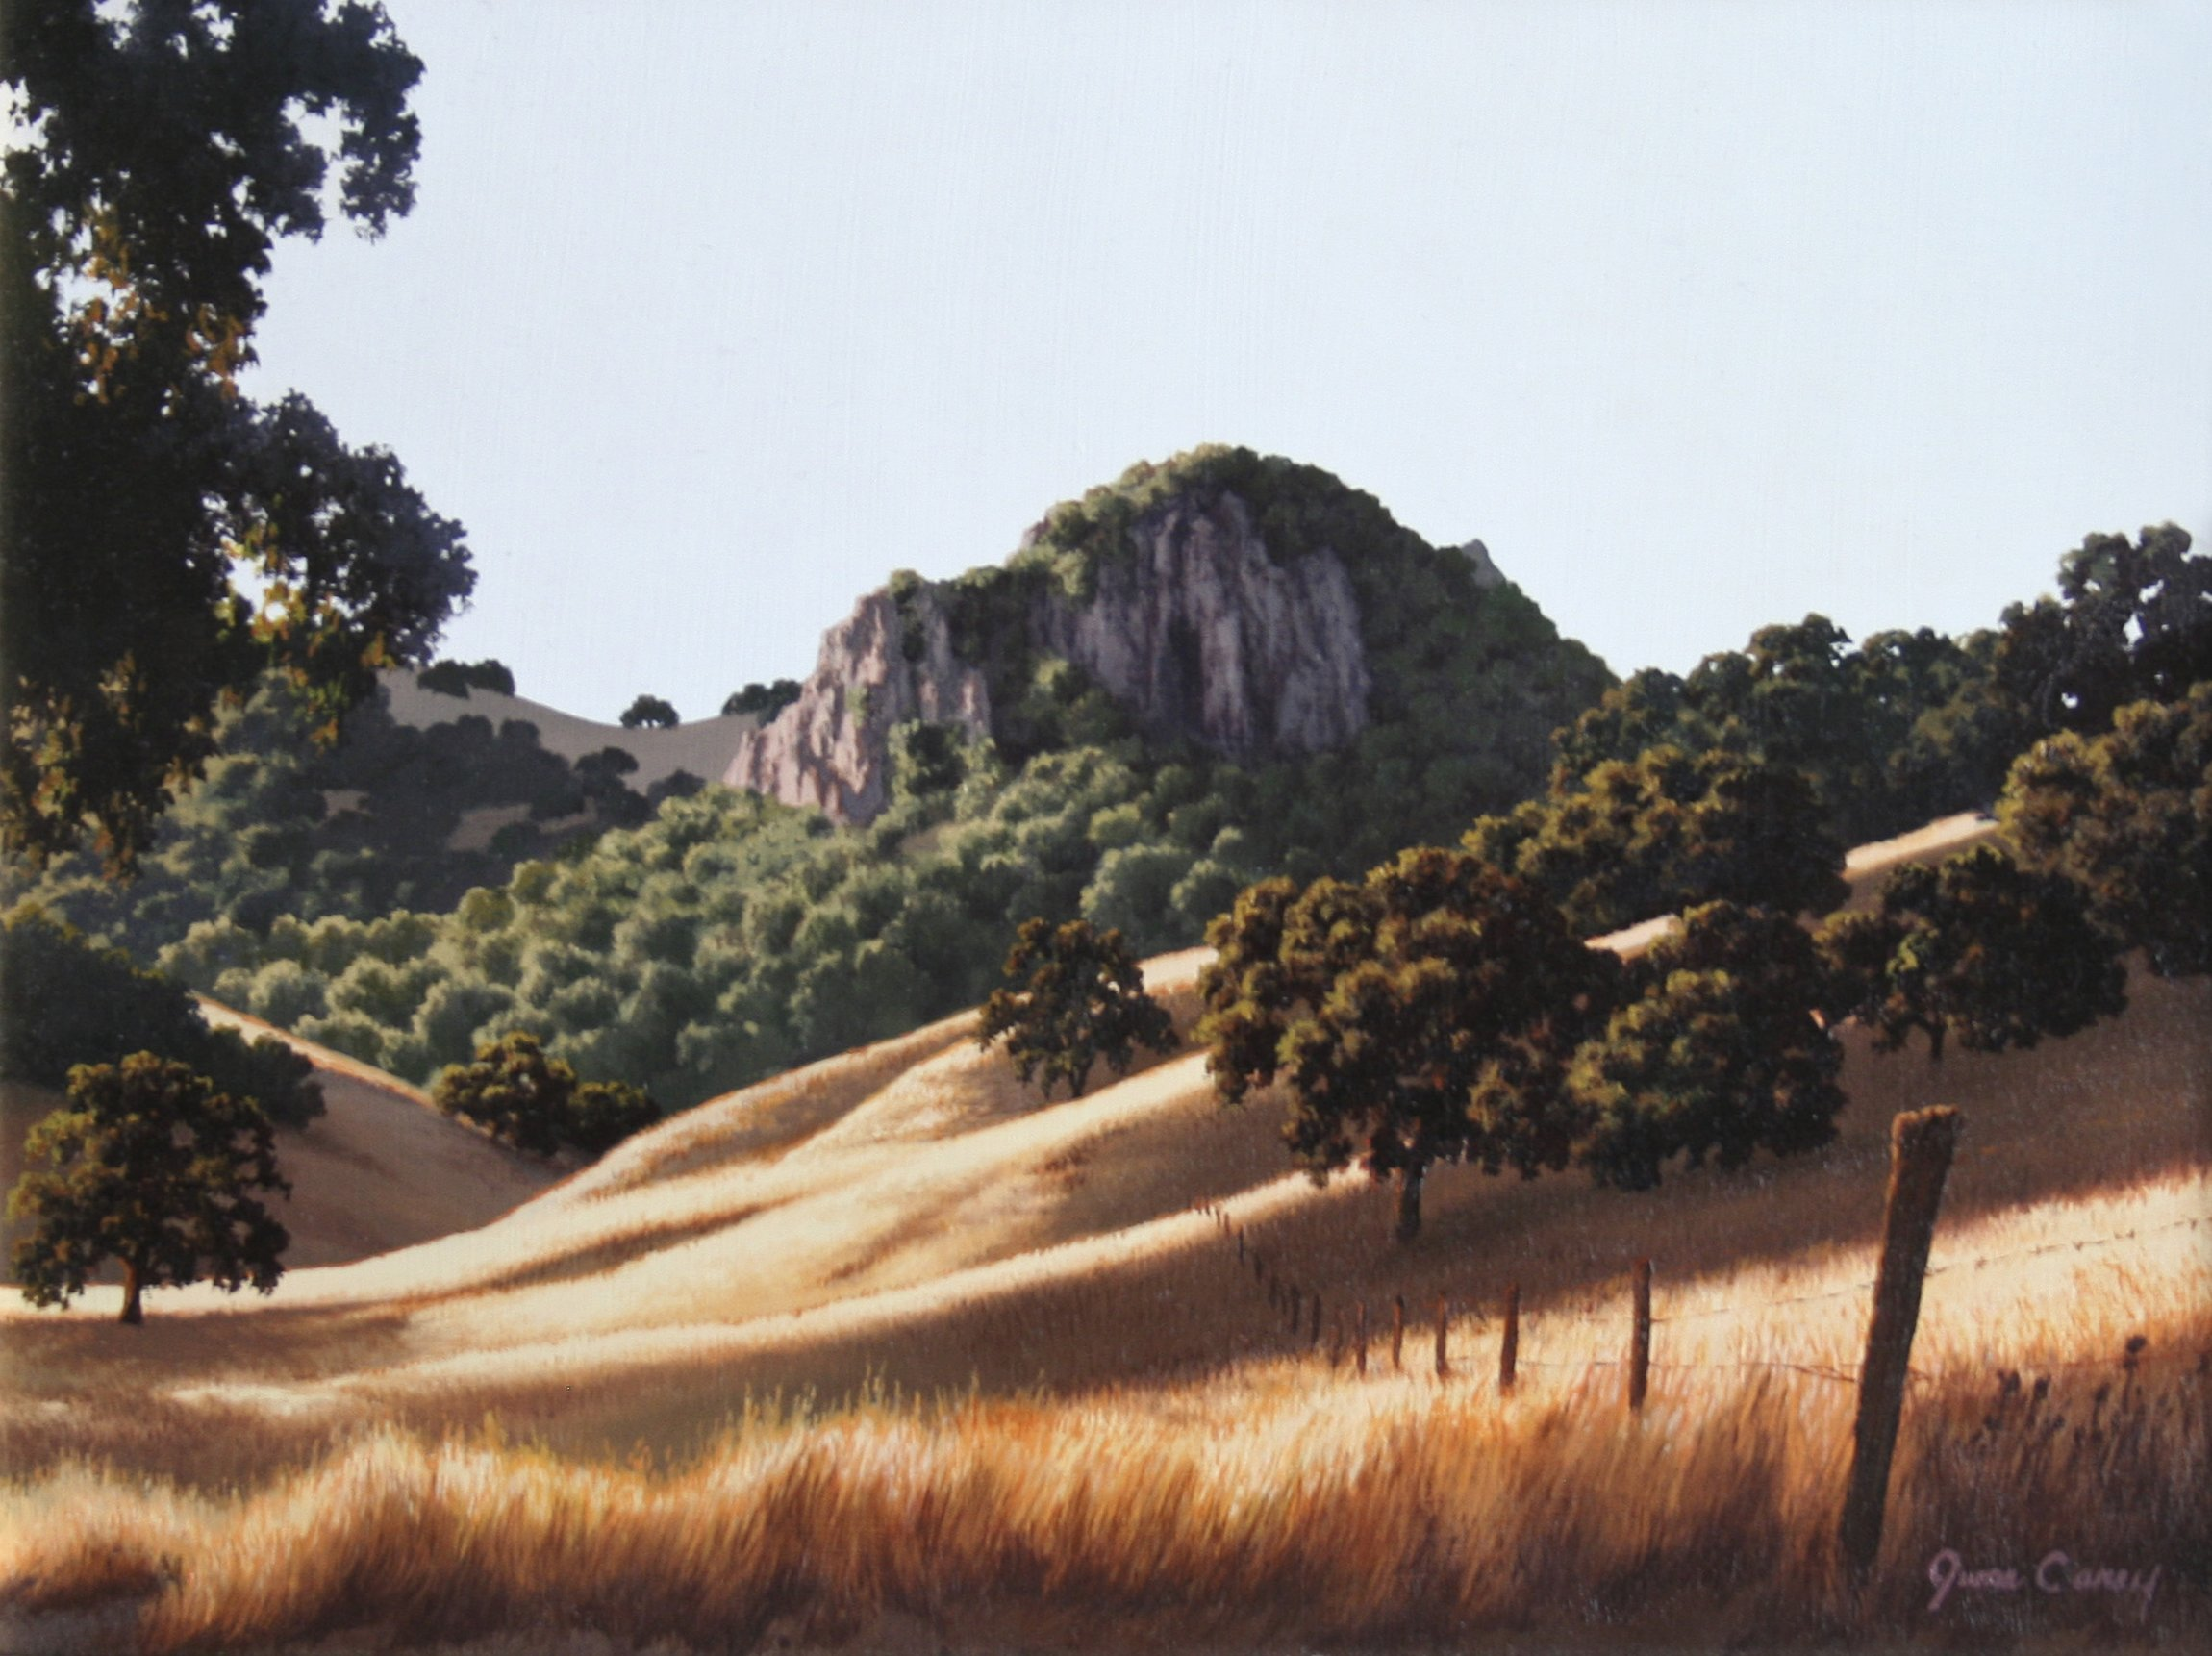 Carey, June – Untitled Landscape With Grassy Hills